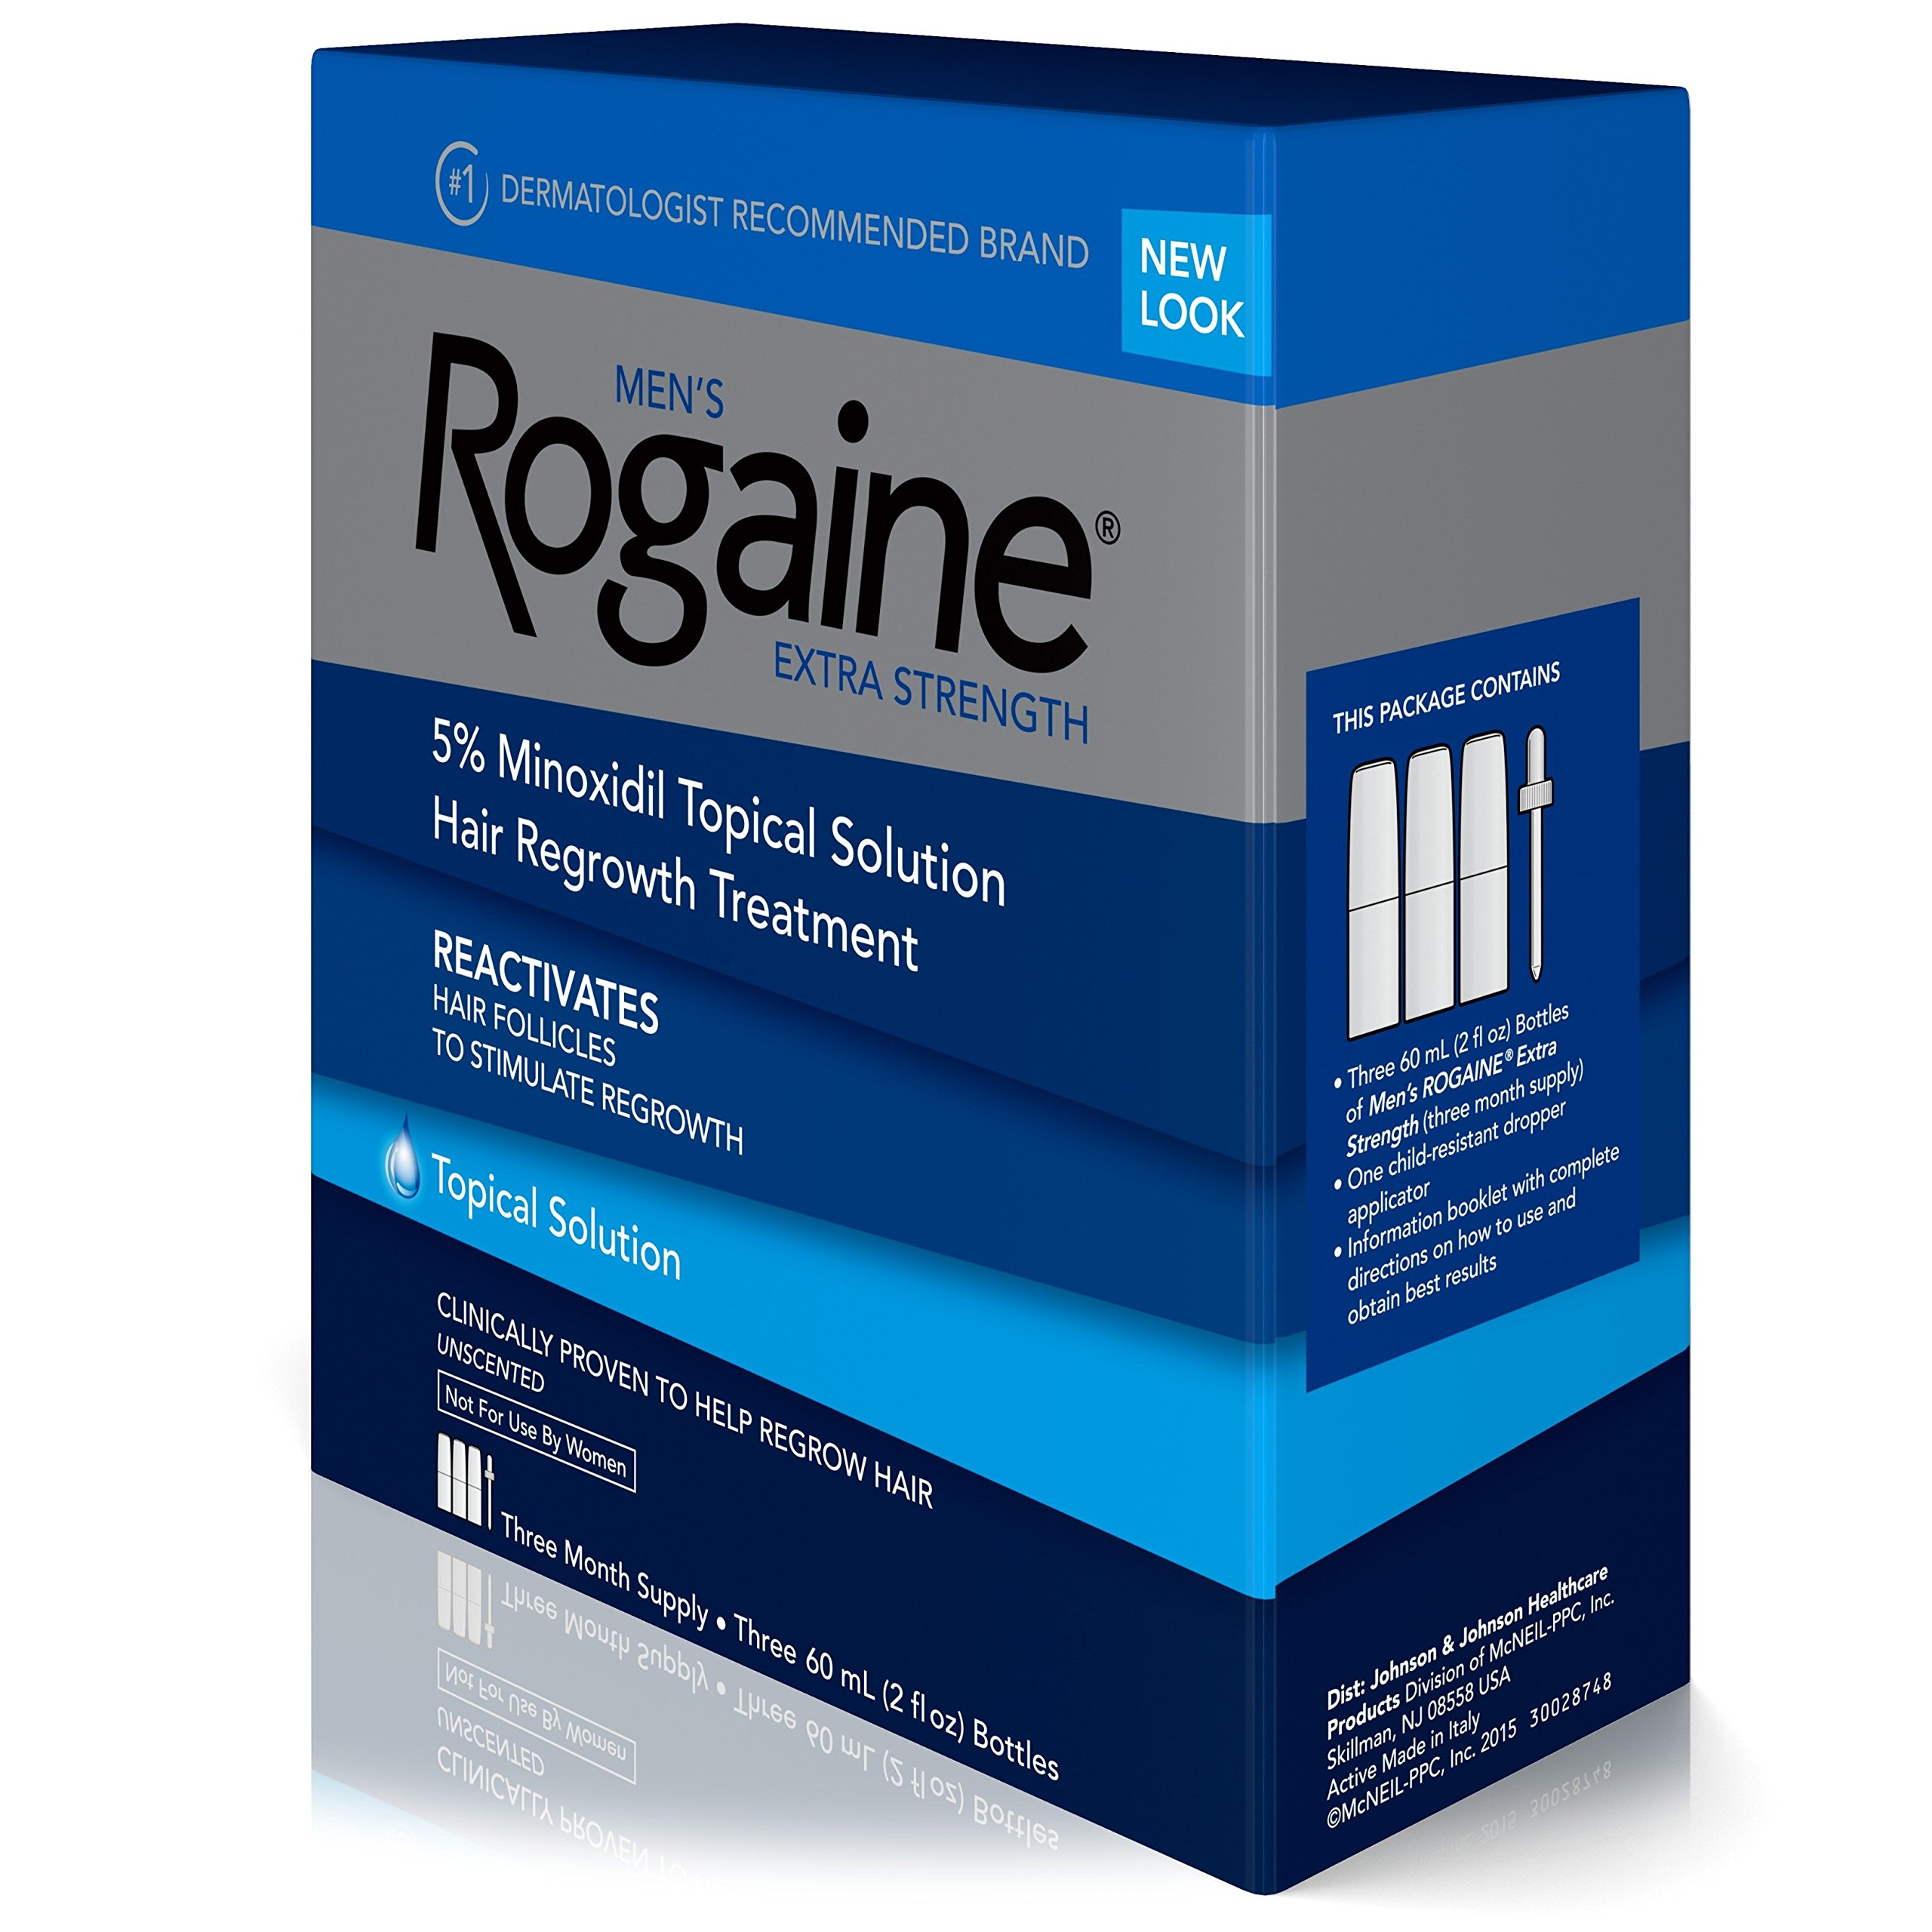 Men's Rogaine Extra Strength 5% Minoxidil Topical Solution for Hair Loss and Hair Regrowth, Topical Treatment for Thinning Hair, 3-Month Supply by Rogaine (Image #2)